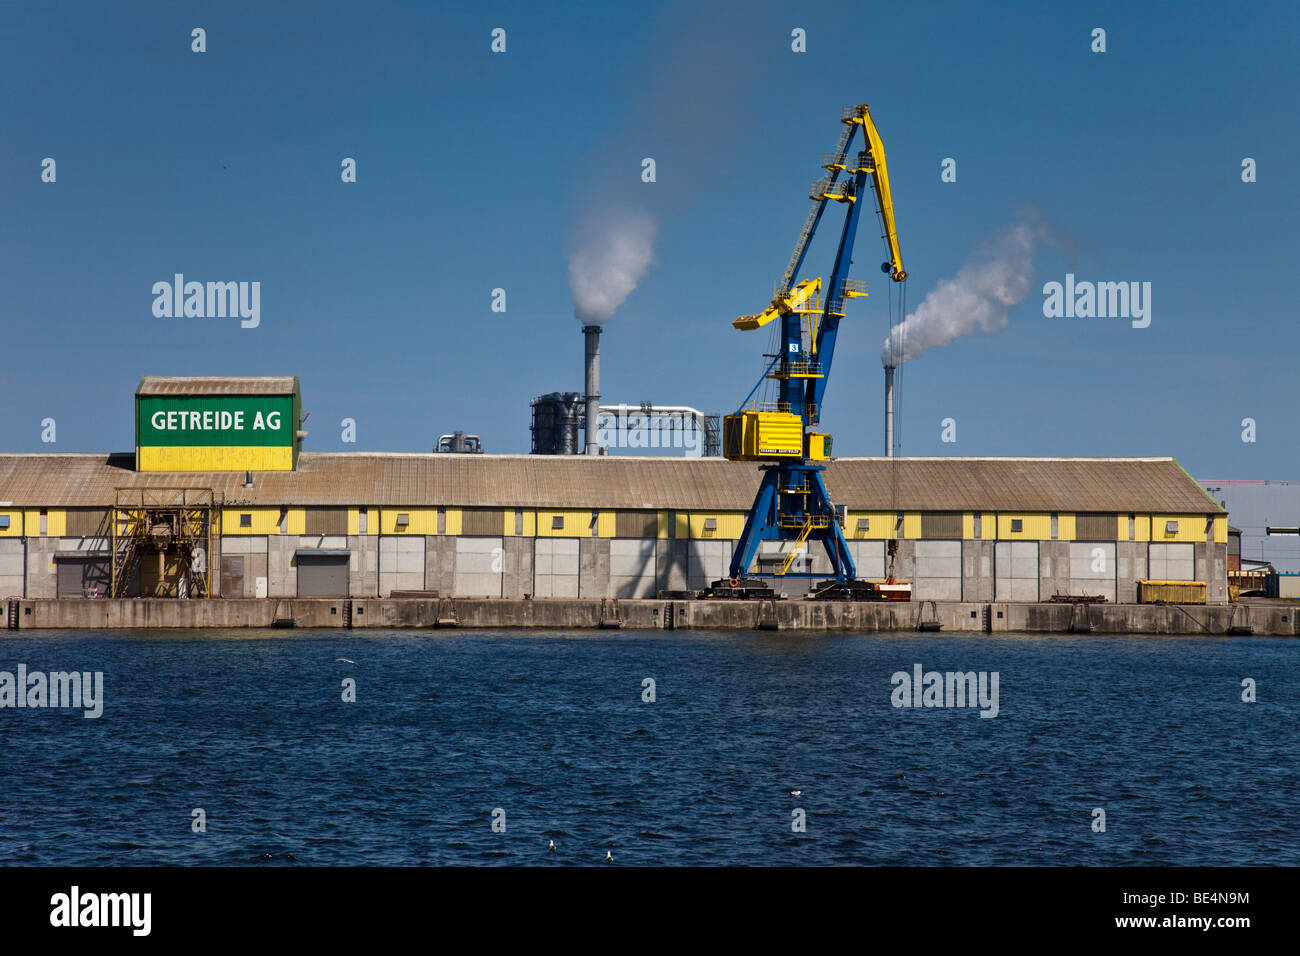 Warehouse and crane in the harbour of Wismar, Germany - Stock Image